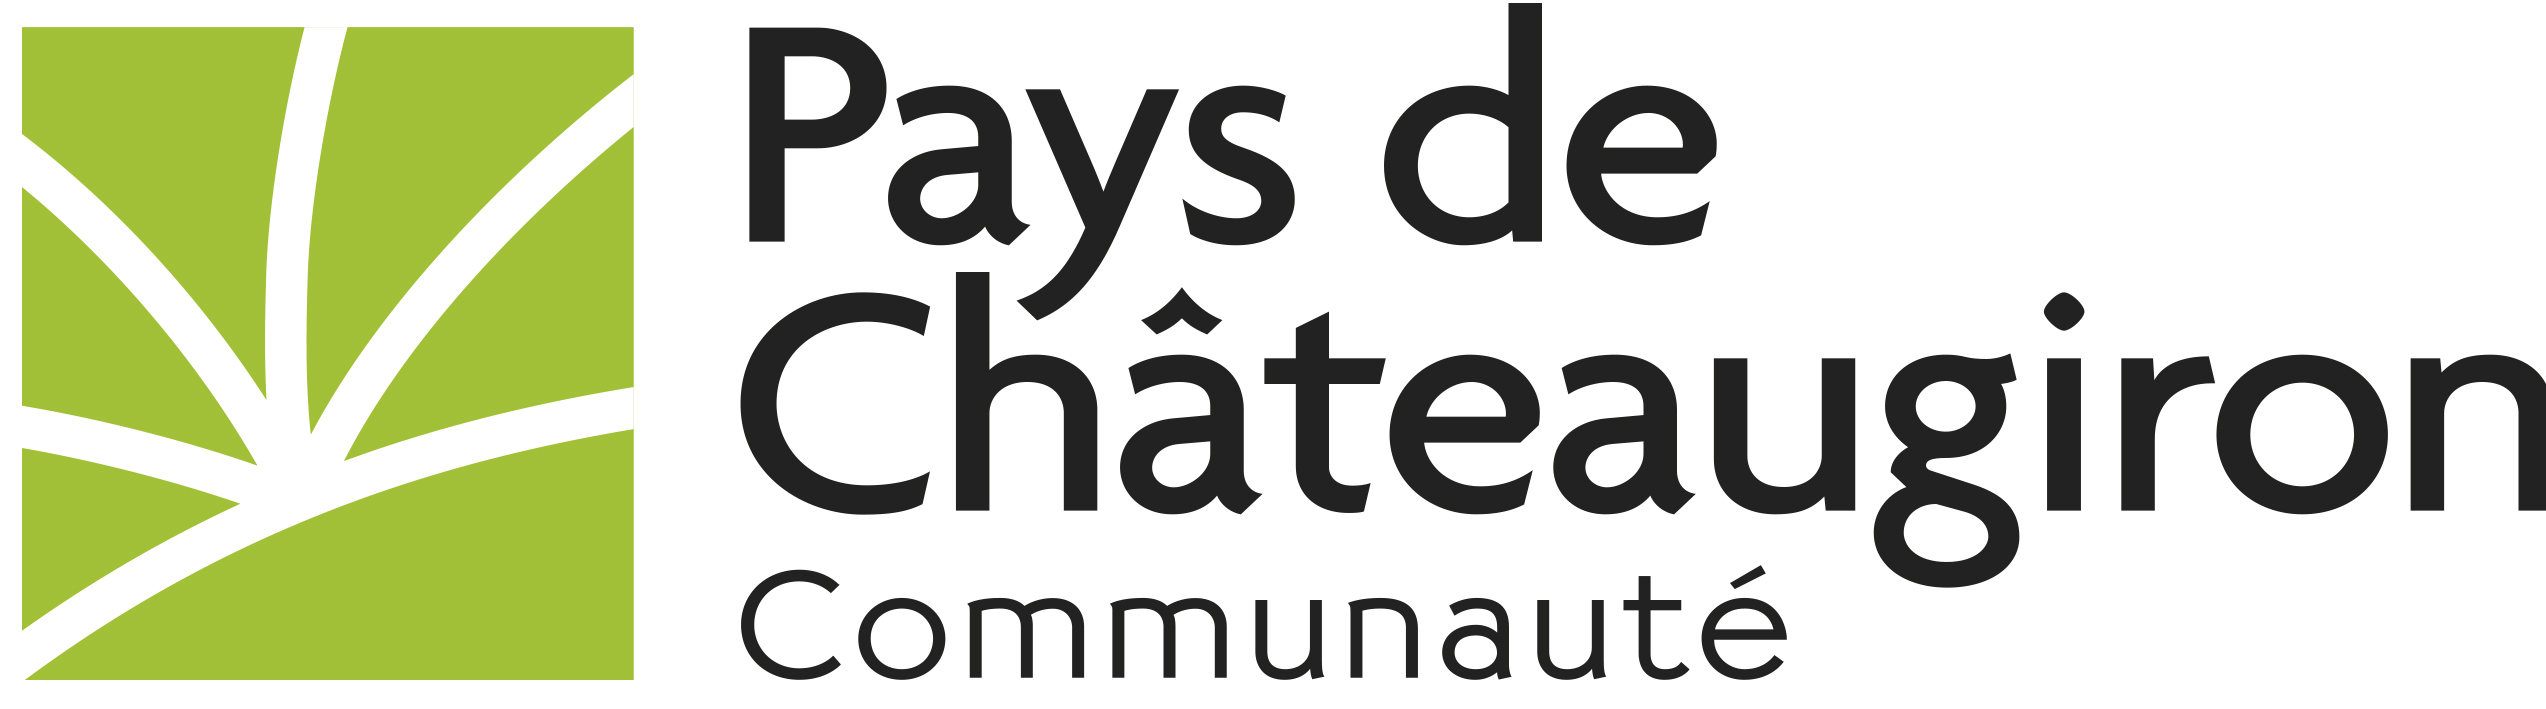 PAYS DE CHATEAUGIRON COMMUNAUTE